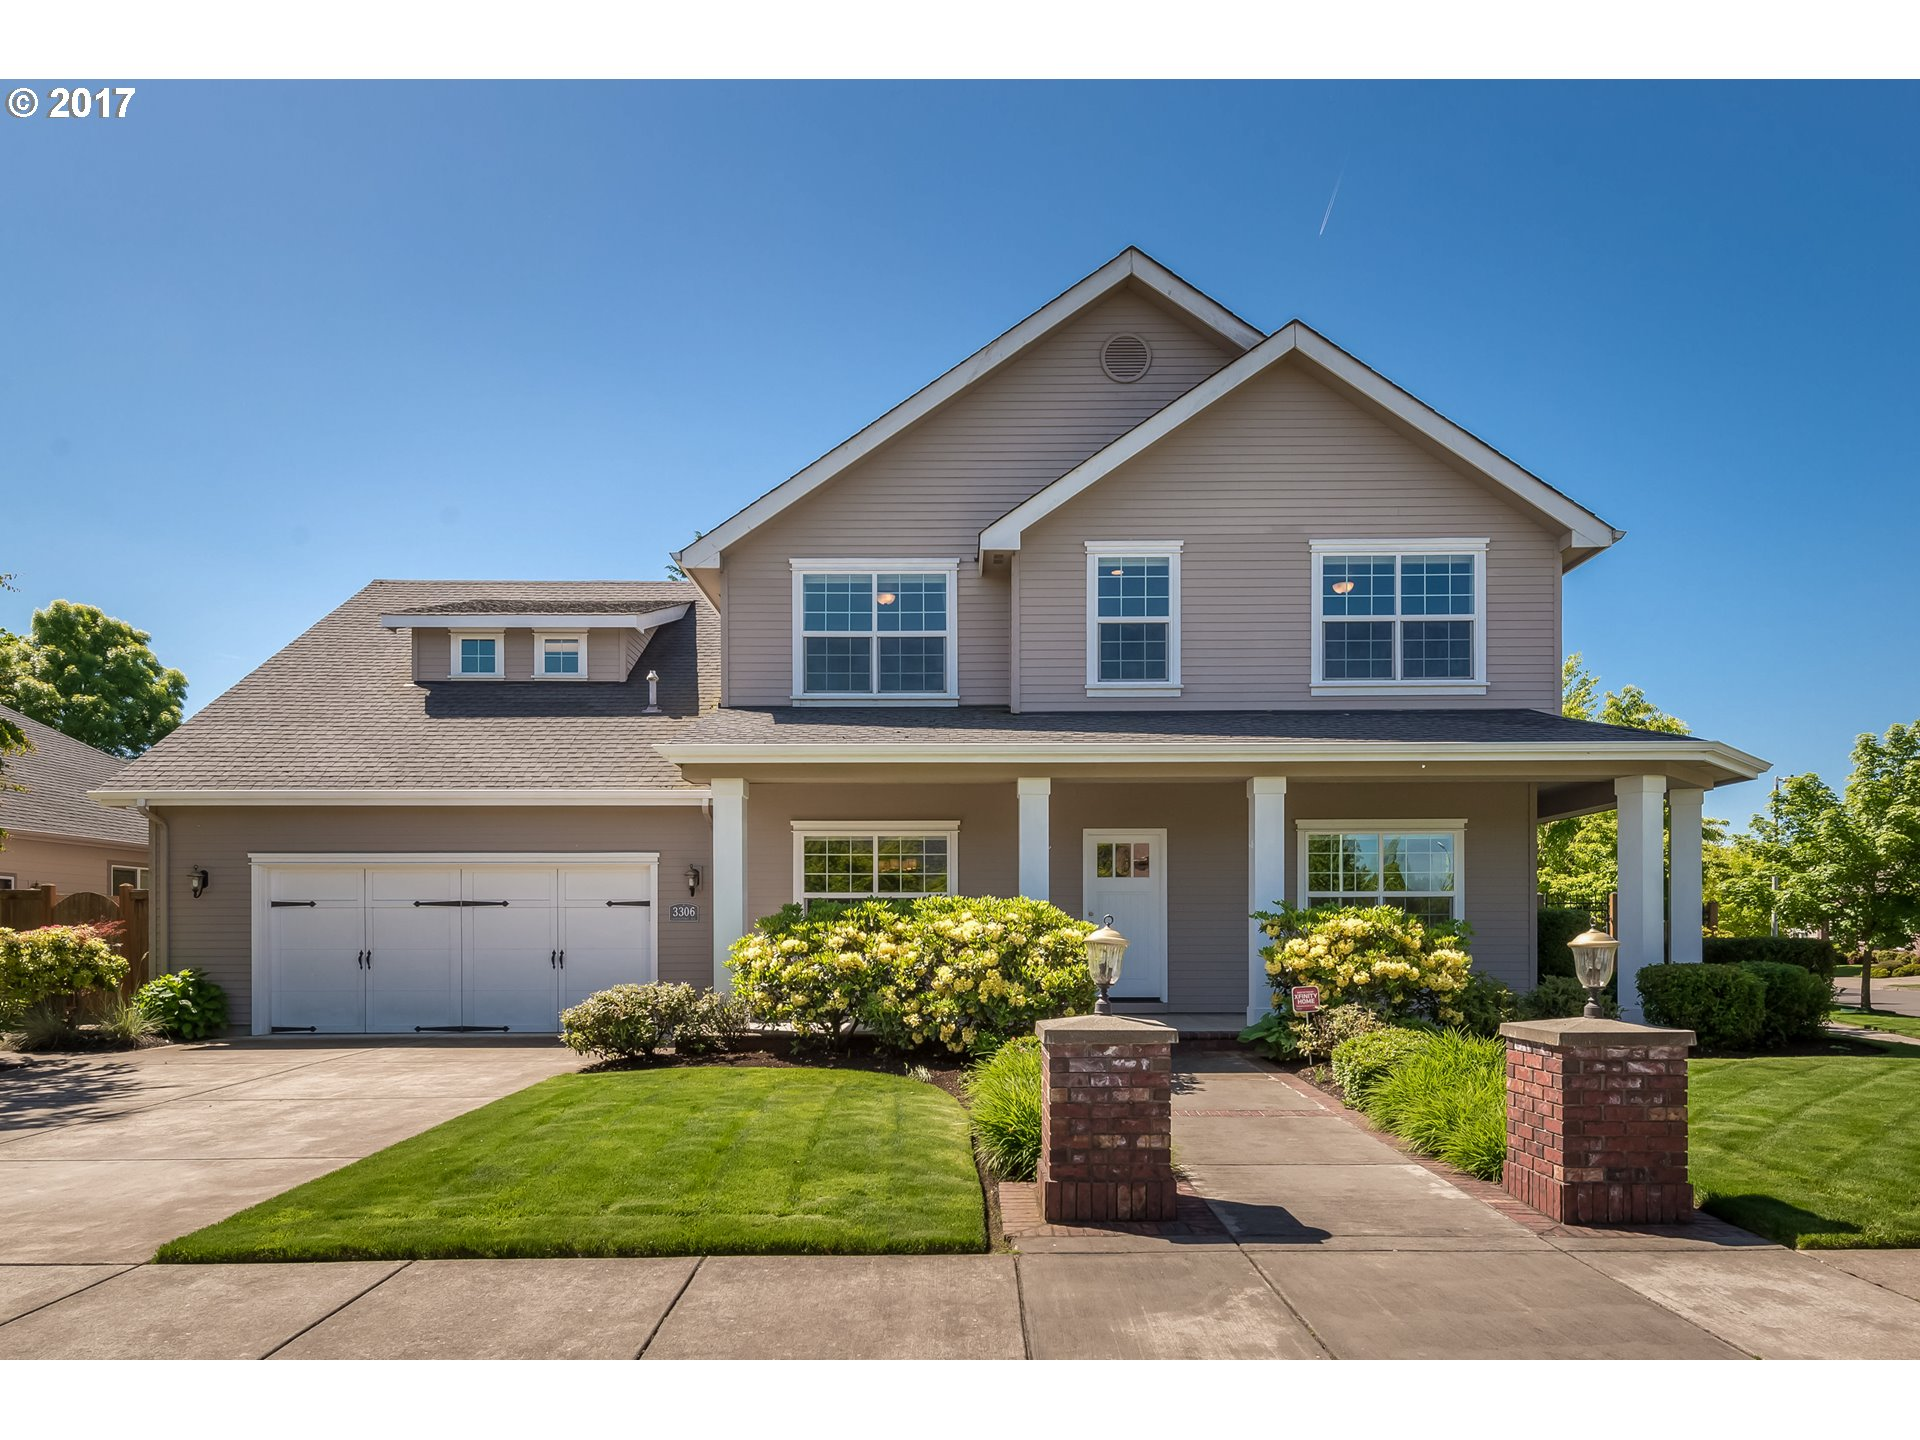 3306 COOPERSTOWN AVE, Eugene, OR 97408